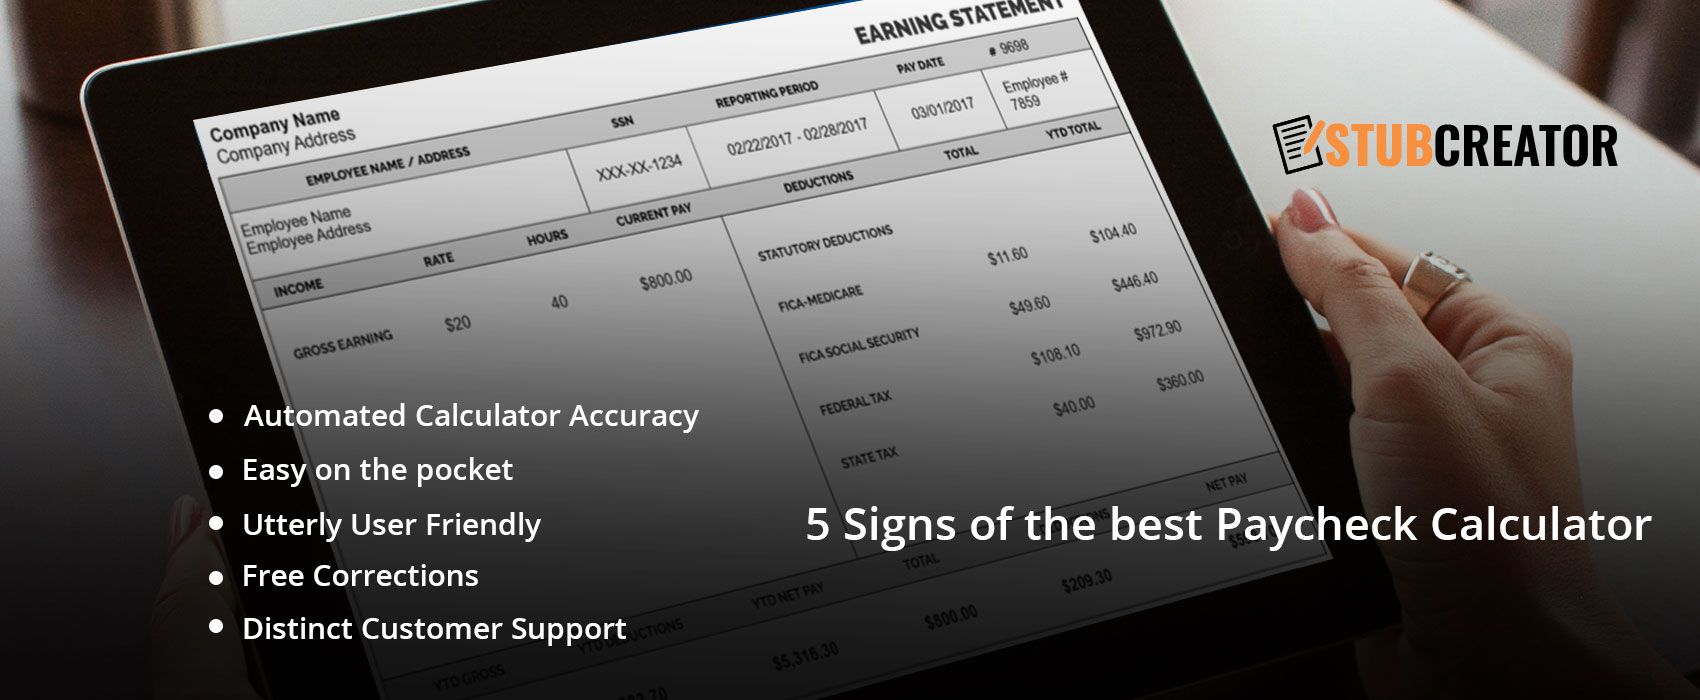 5 signs of the best paycheck calculator stub creator